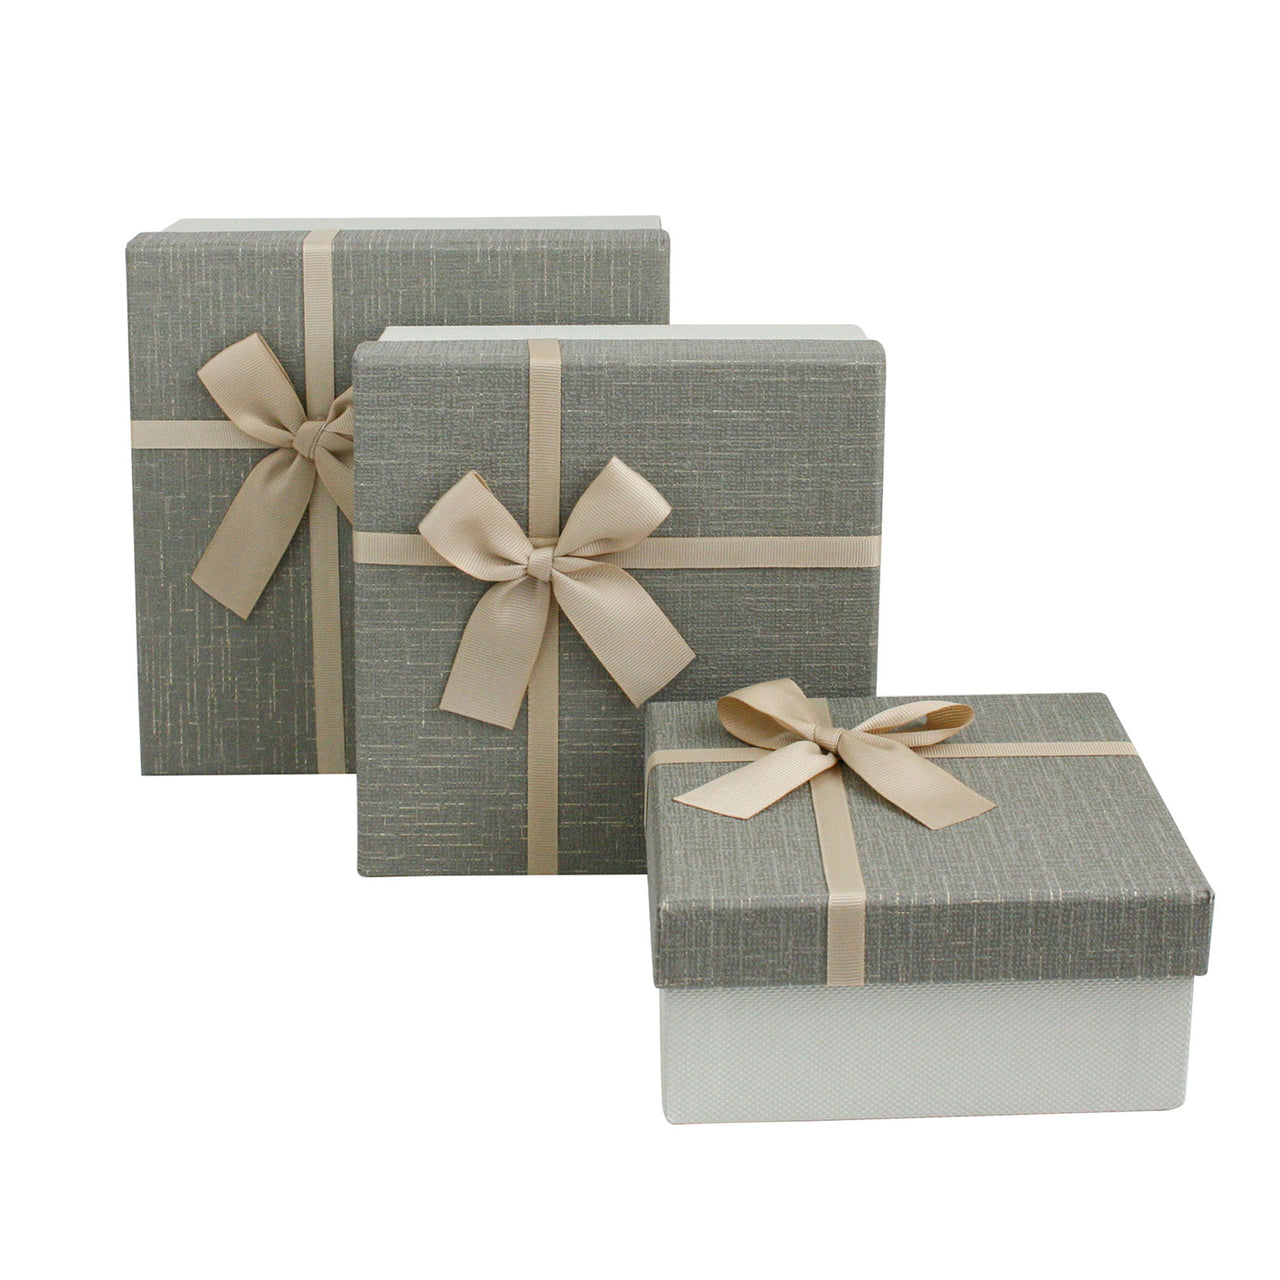 Grey Gift Box - Set Of 3